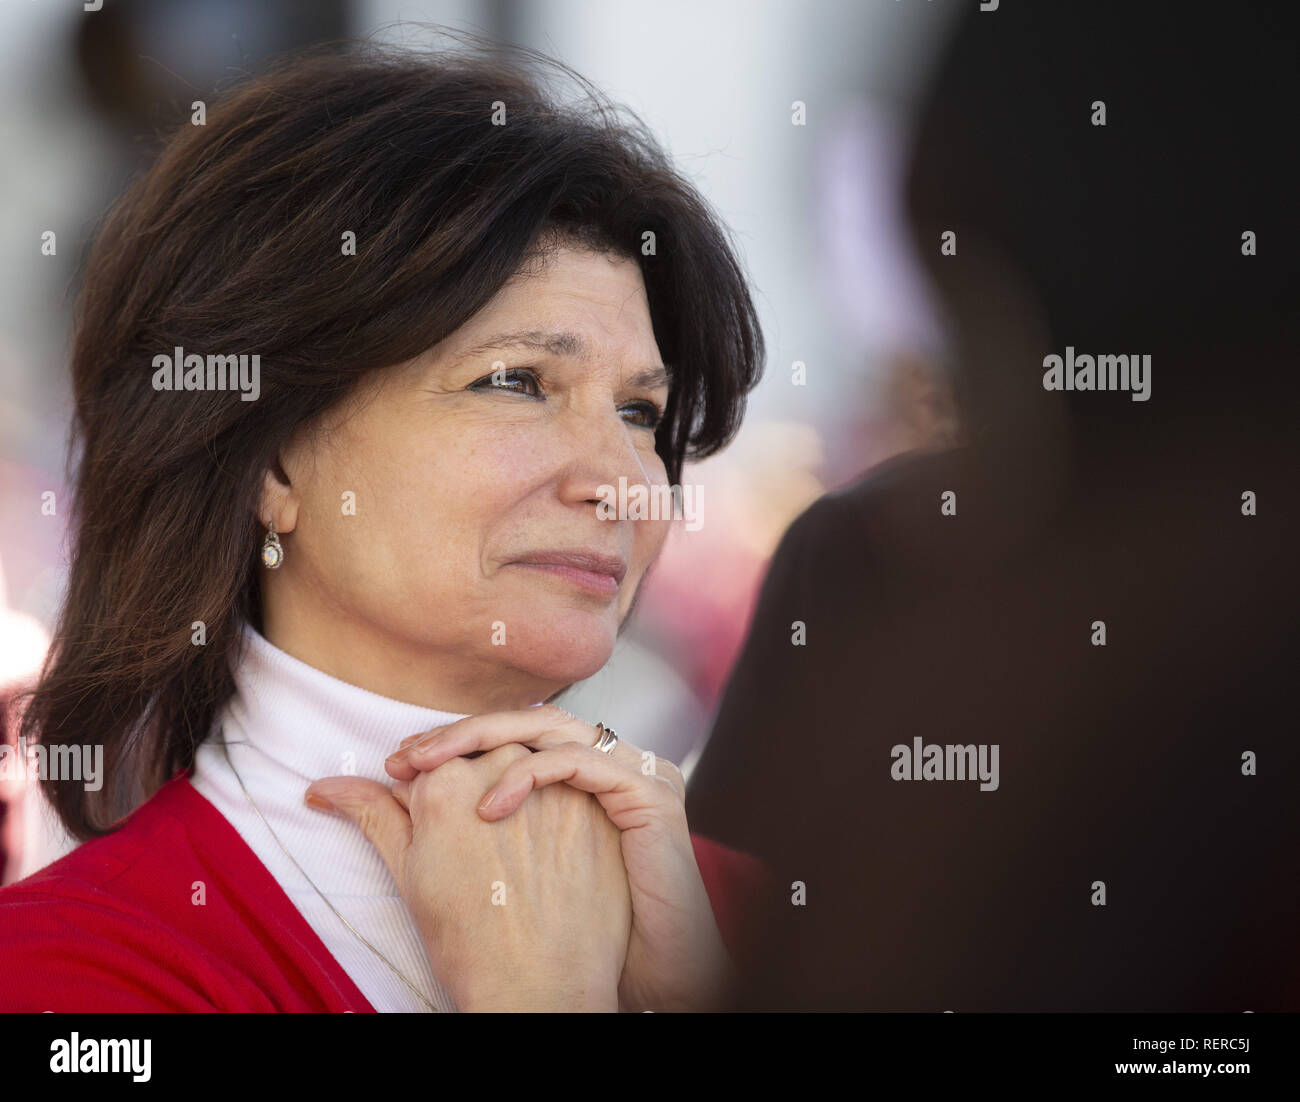 Los Angeles, California, USA. 22nd Jan, 2019. Lily Eskelsen Garc'a watches speakers at a downtown Los Angeles rally after an agreement between UTLA and the LAUSD was reached Tuesday, January 22, 2019. Credit: Allison Zaucha/ZUMA Wire/Alamy Live News - Stock Image